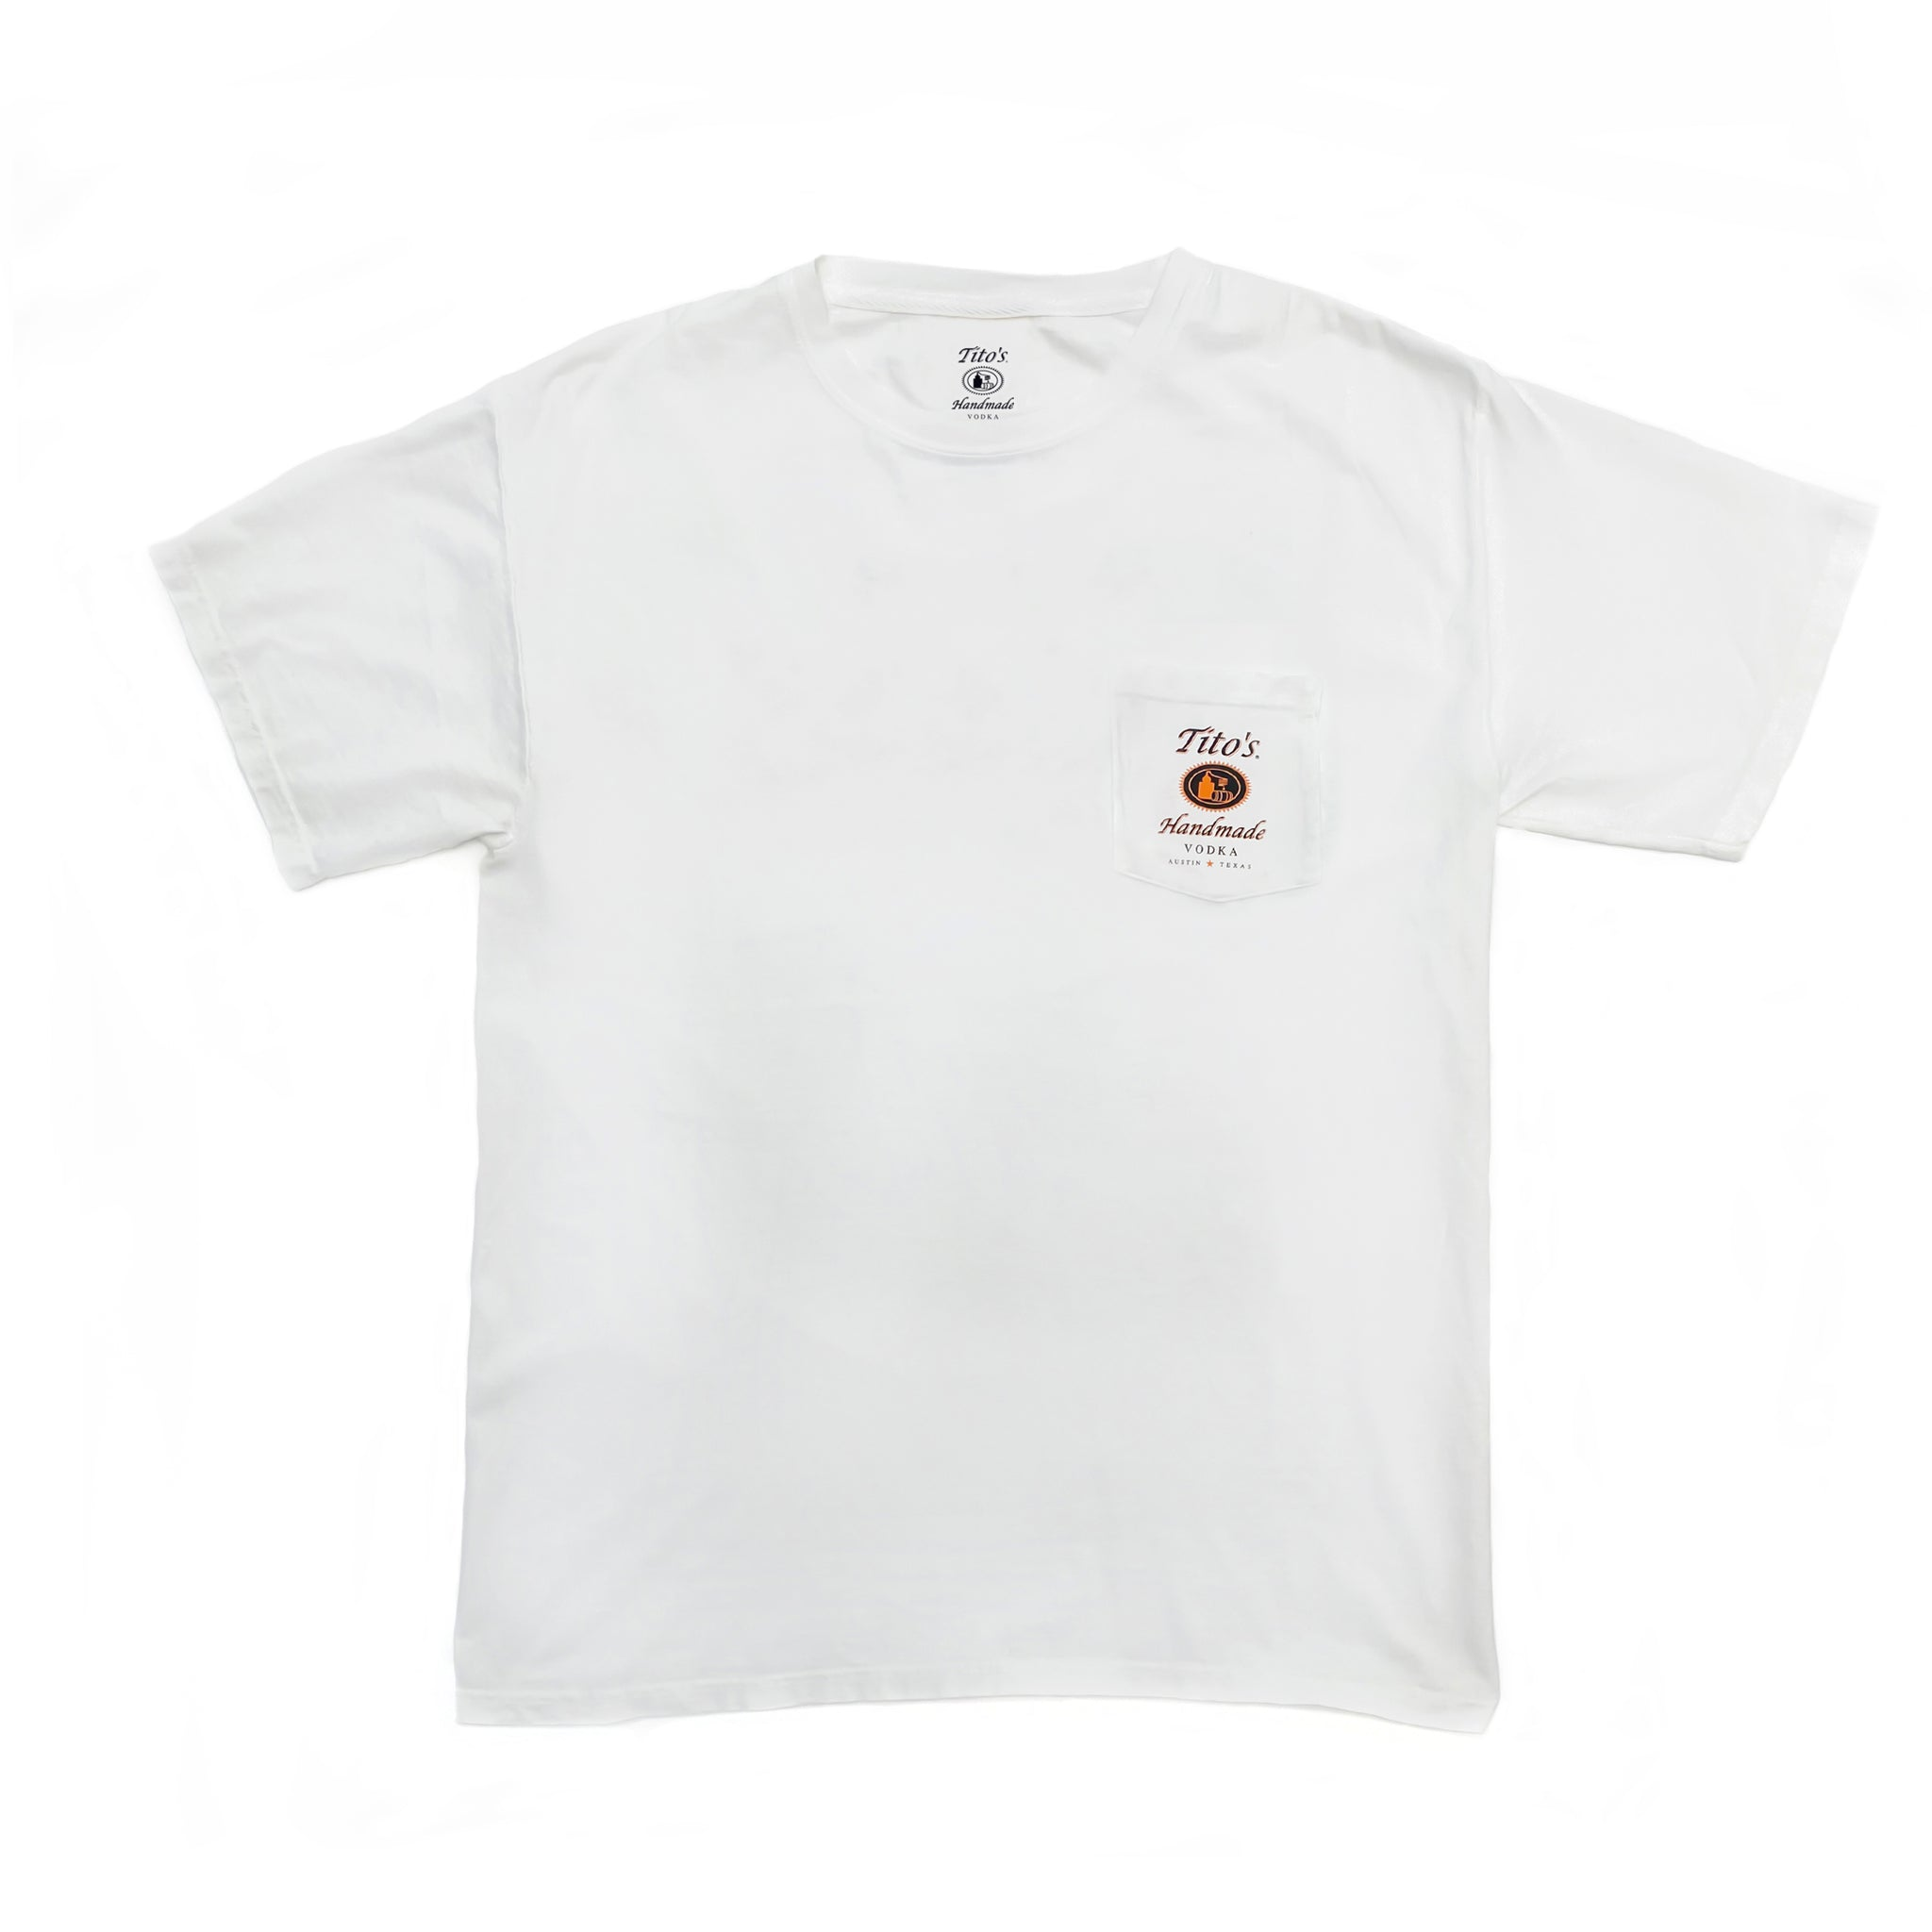 Front view of white short-sleeved t-shirt with Tito's Handmade Vodka logo on left breast pocket